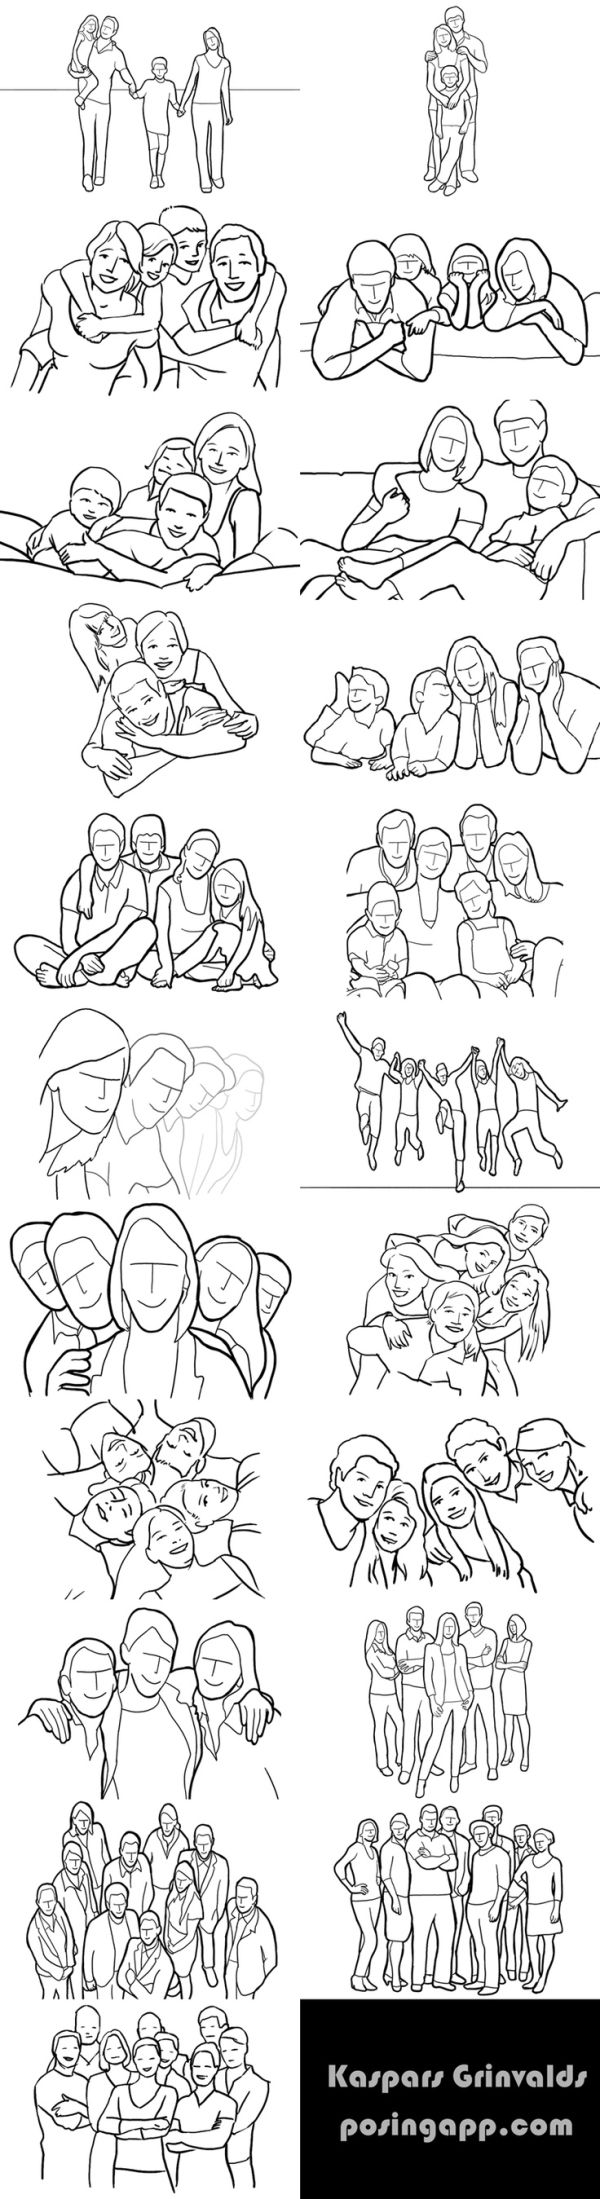 ideas for group poses... I know someone who needs this. by G-Studio Ganbold